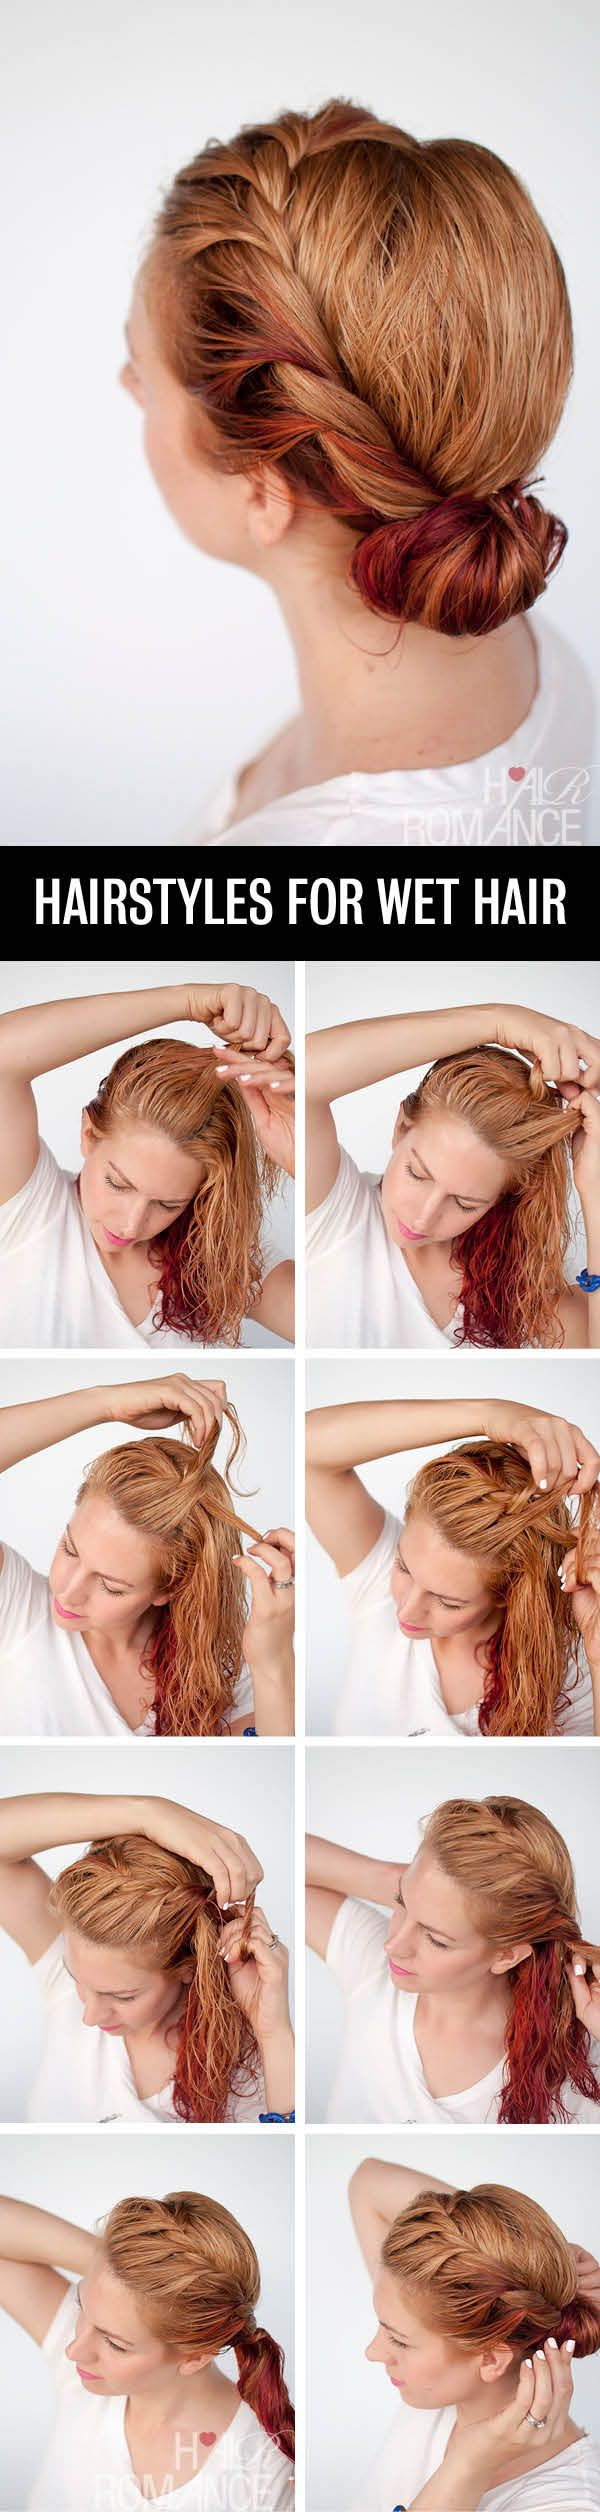 Get ready fast with easy hairstyle tutorials for wet hair easy